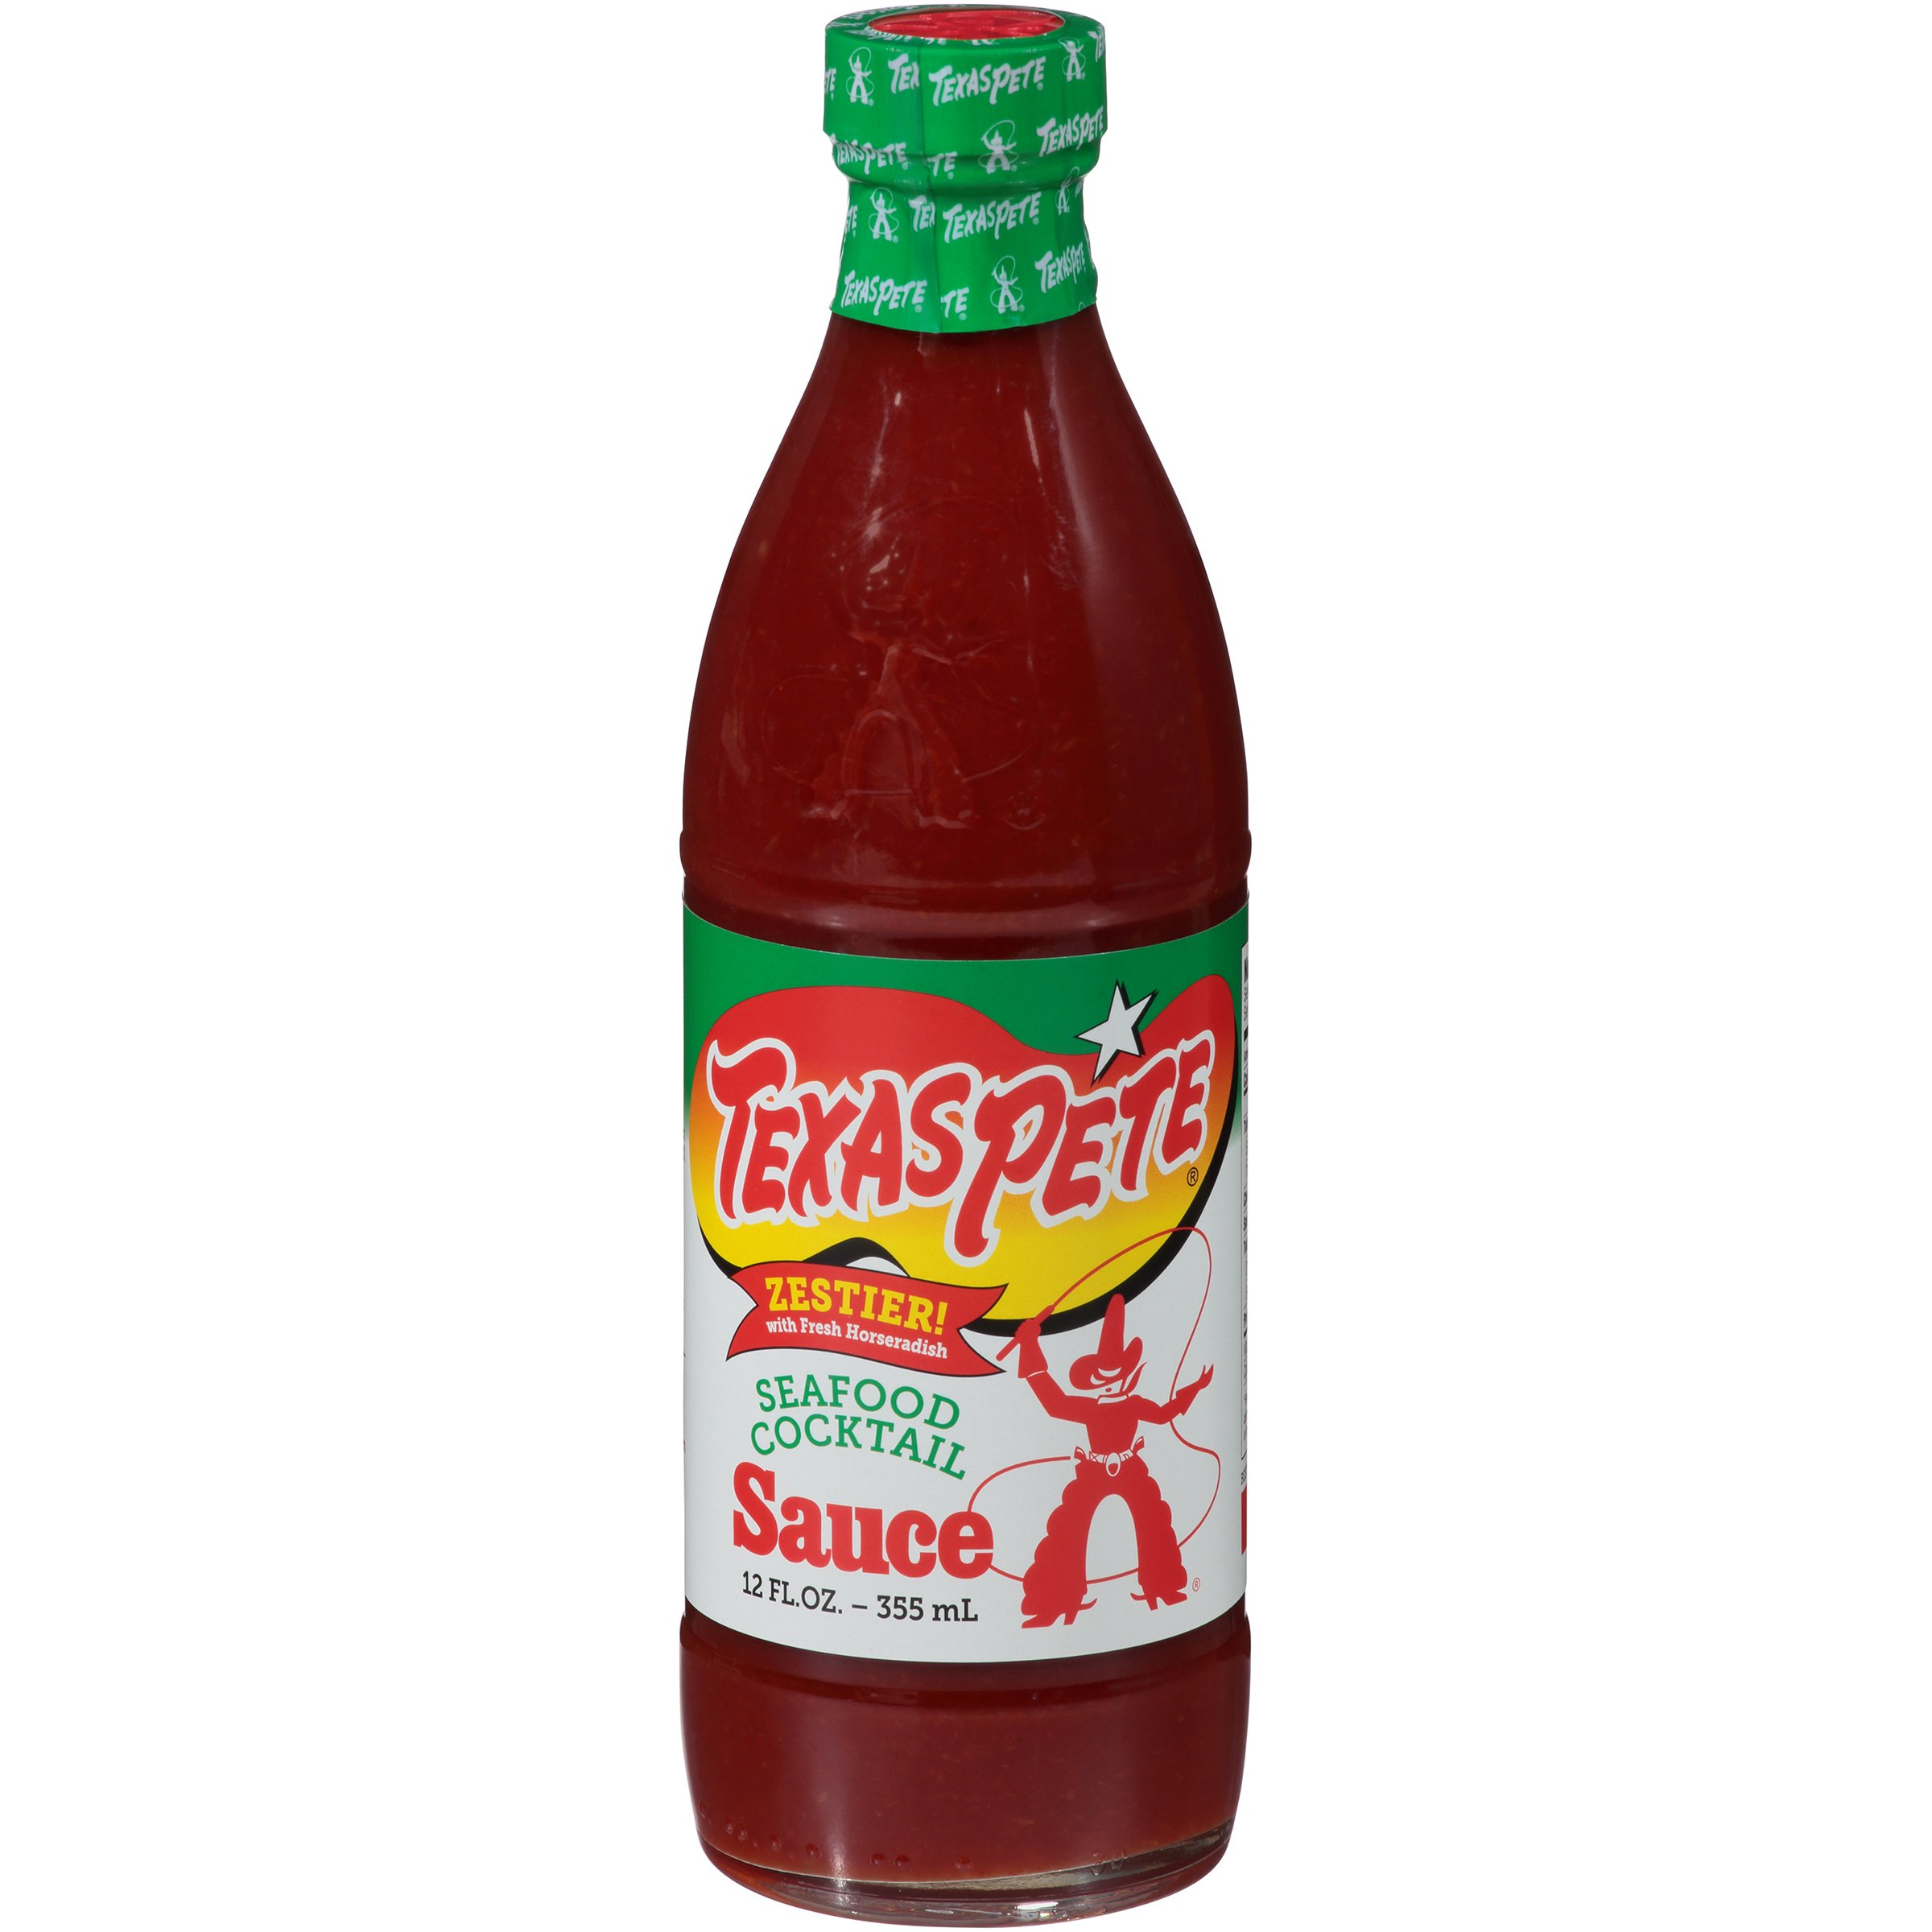 Texas Pete, Texas Pete Seafood Cocktail Sauce 12 fl oz. (12 count) by Texas Pete